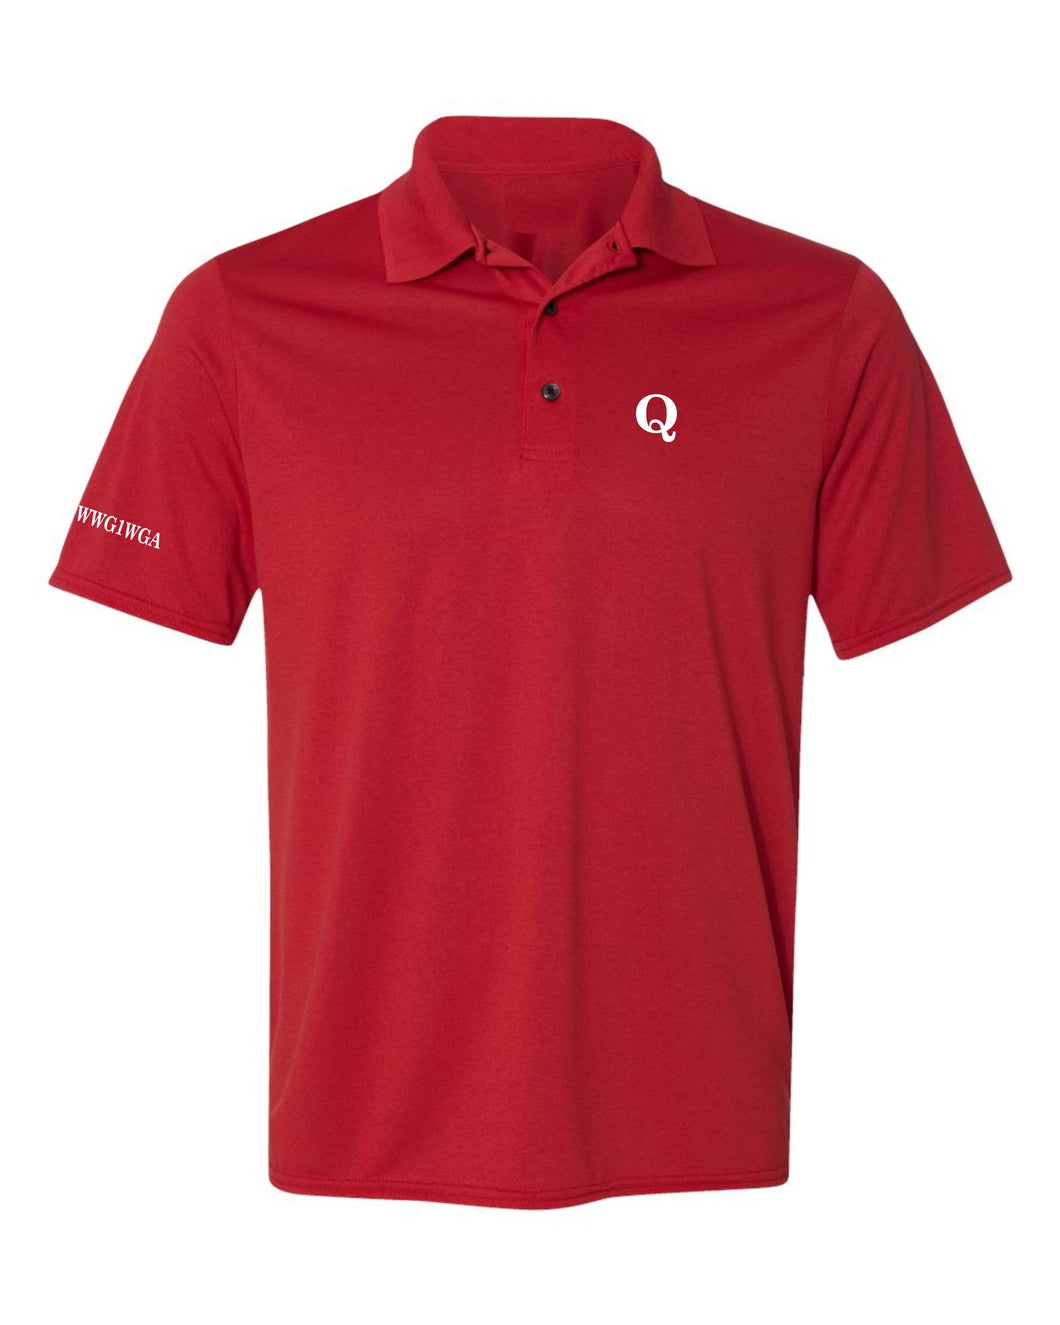 SPORTY-Q Polo Shirt